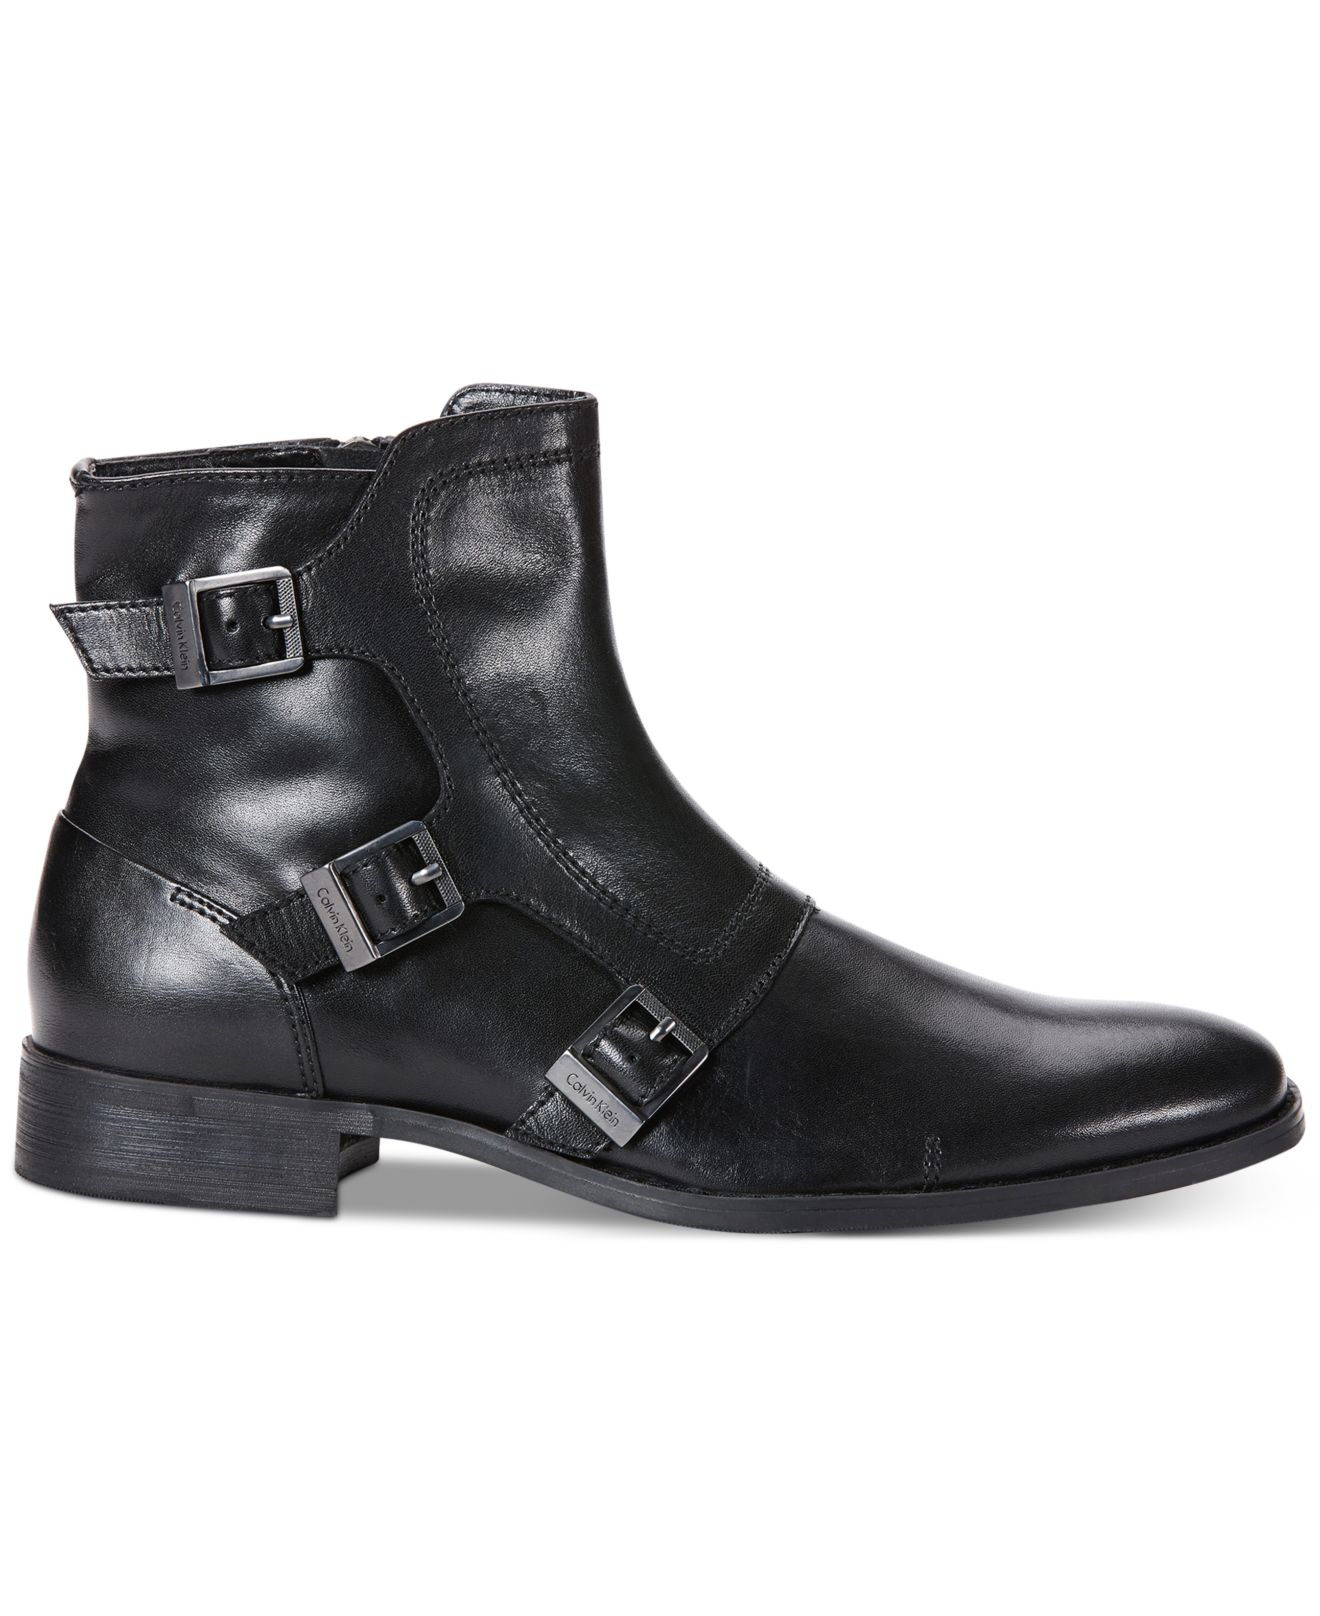 calvin klein stark leather boots in black for lyst